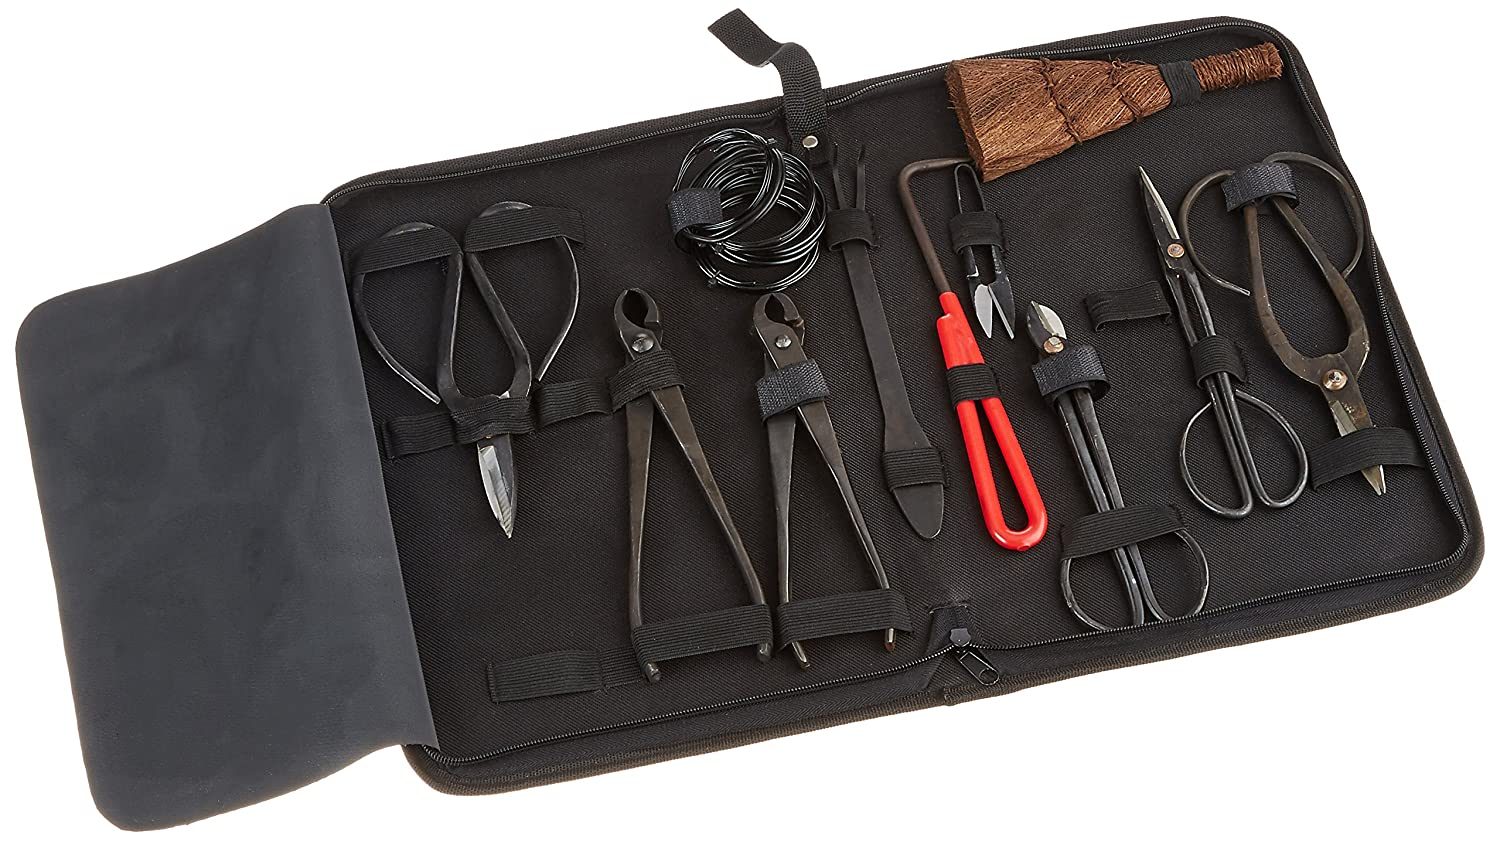 IMAGE Bonsai Tools Extensive 10-Pc Carbon Steel Master Shear Set Kit with Tool Roll Wires in Heavy Duty Nylon Case